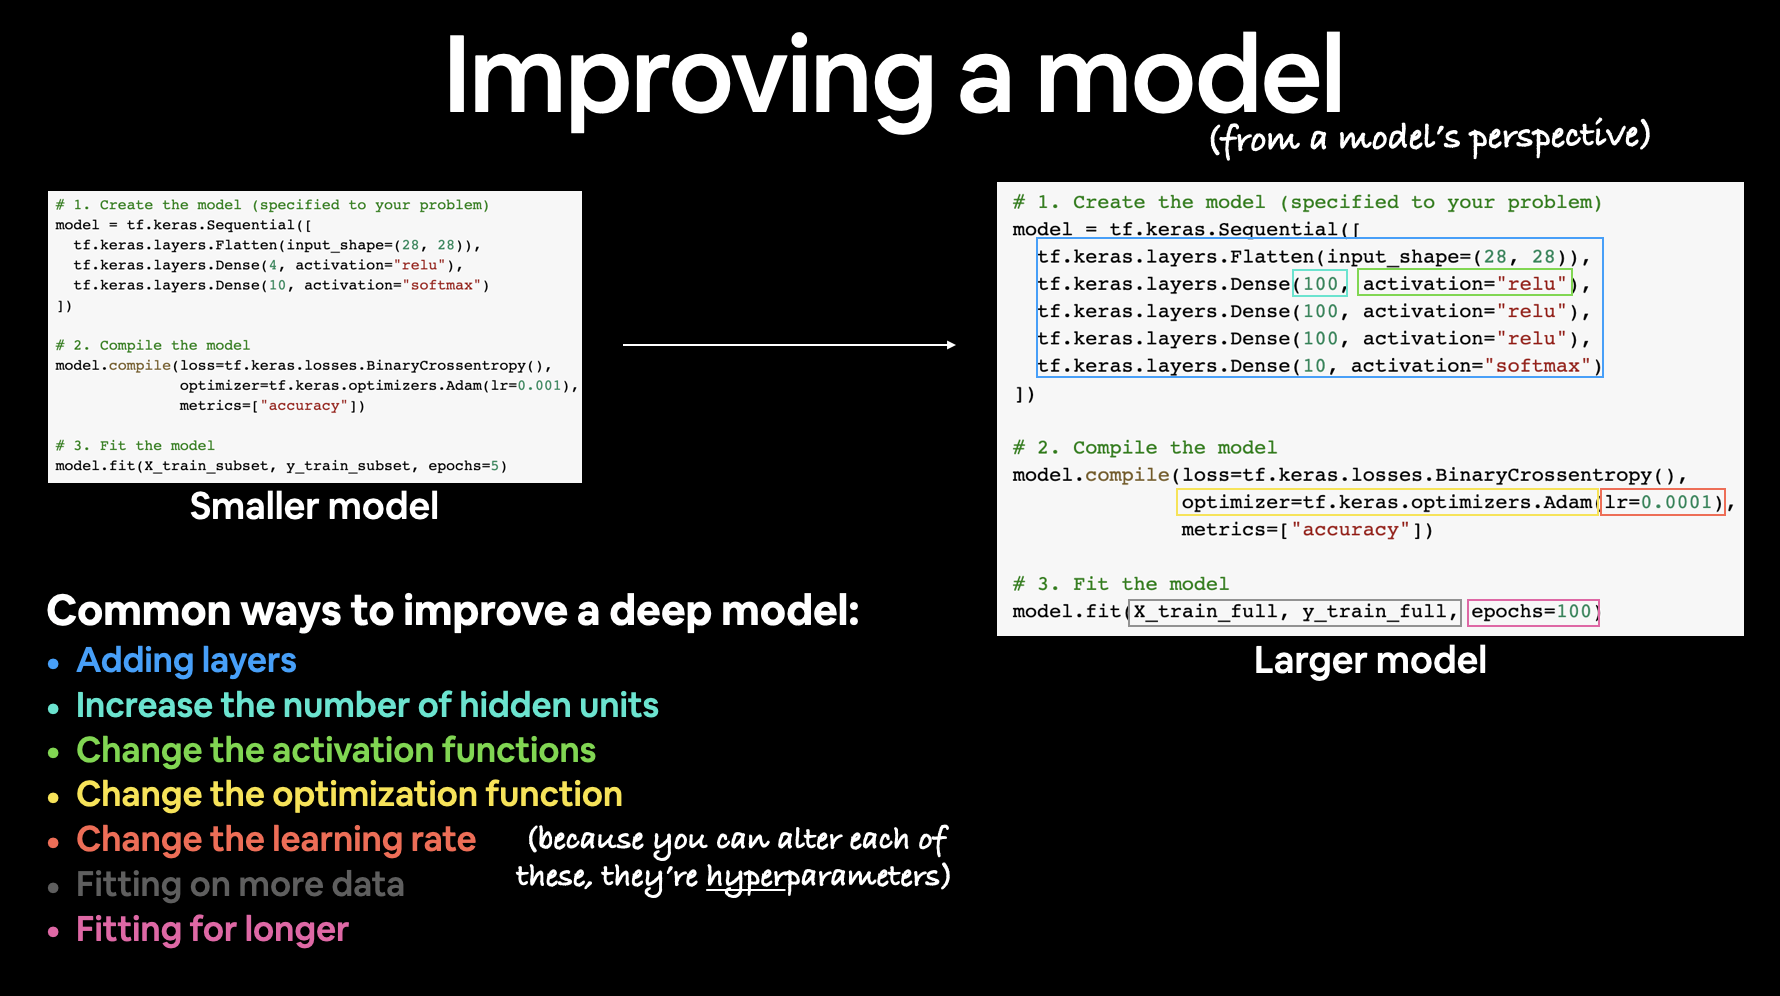 various options you can use to improve a neural network model